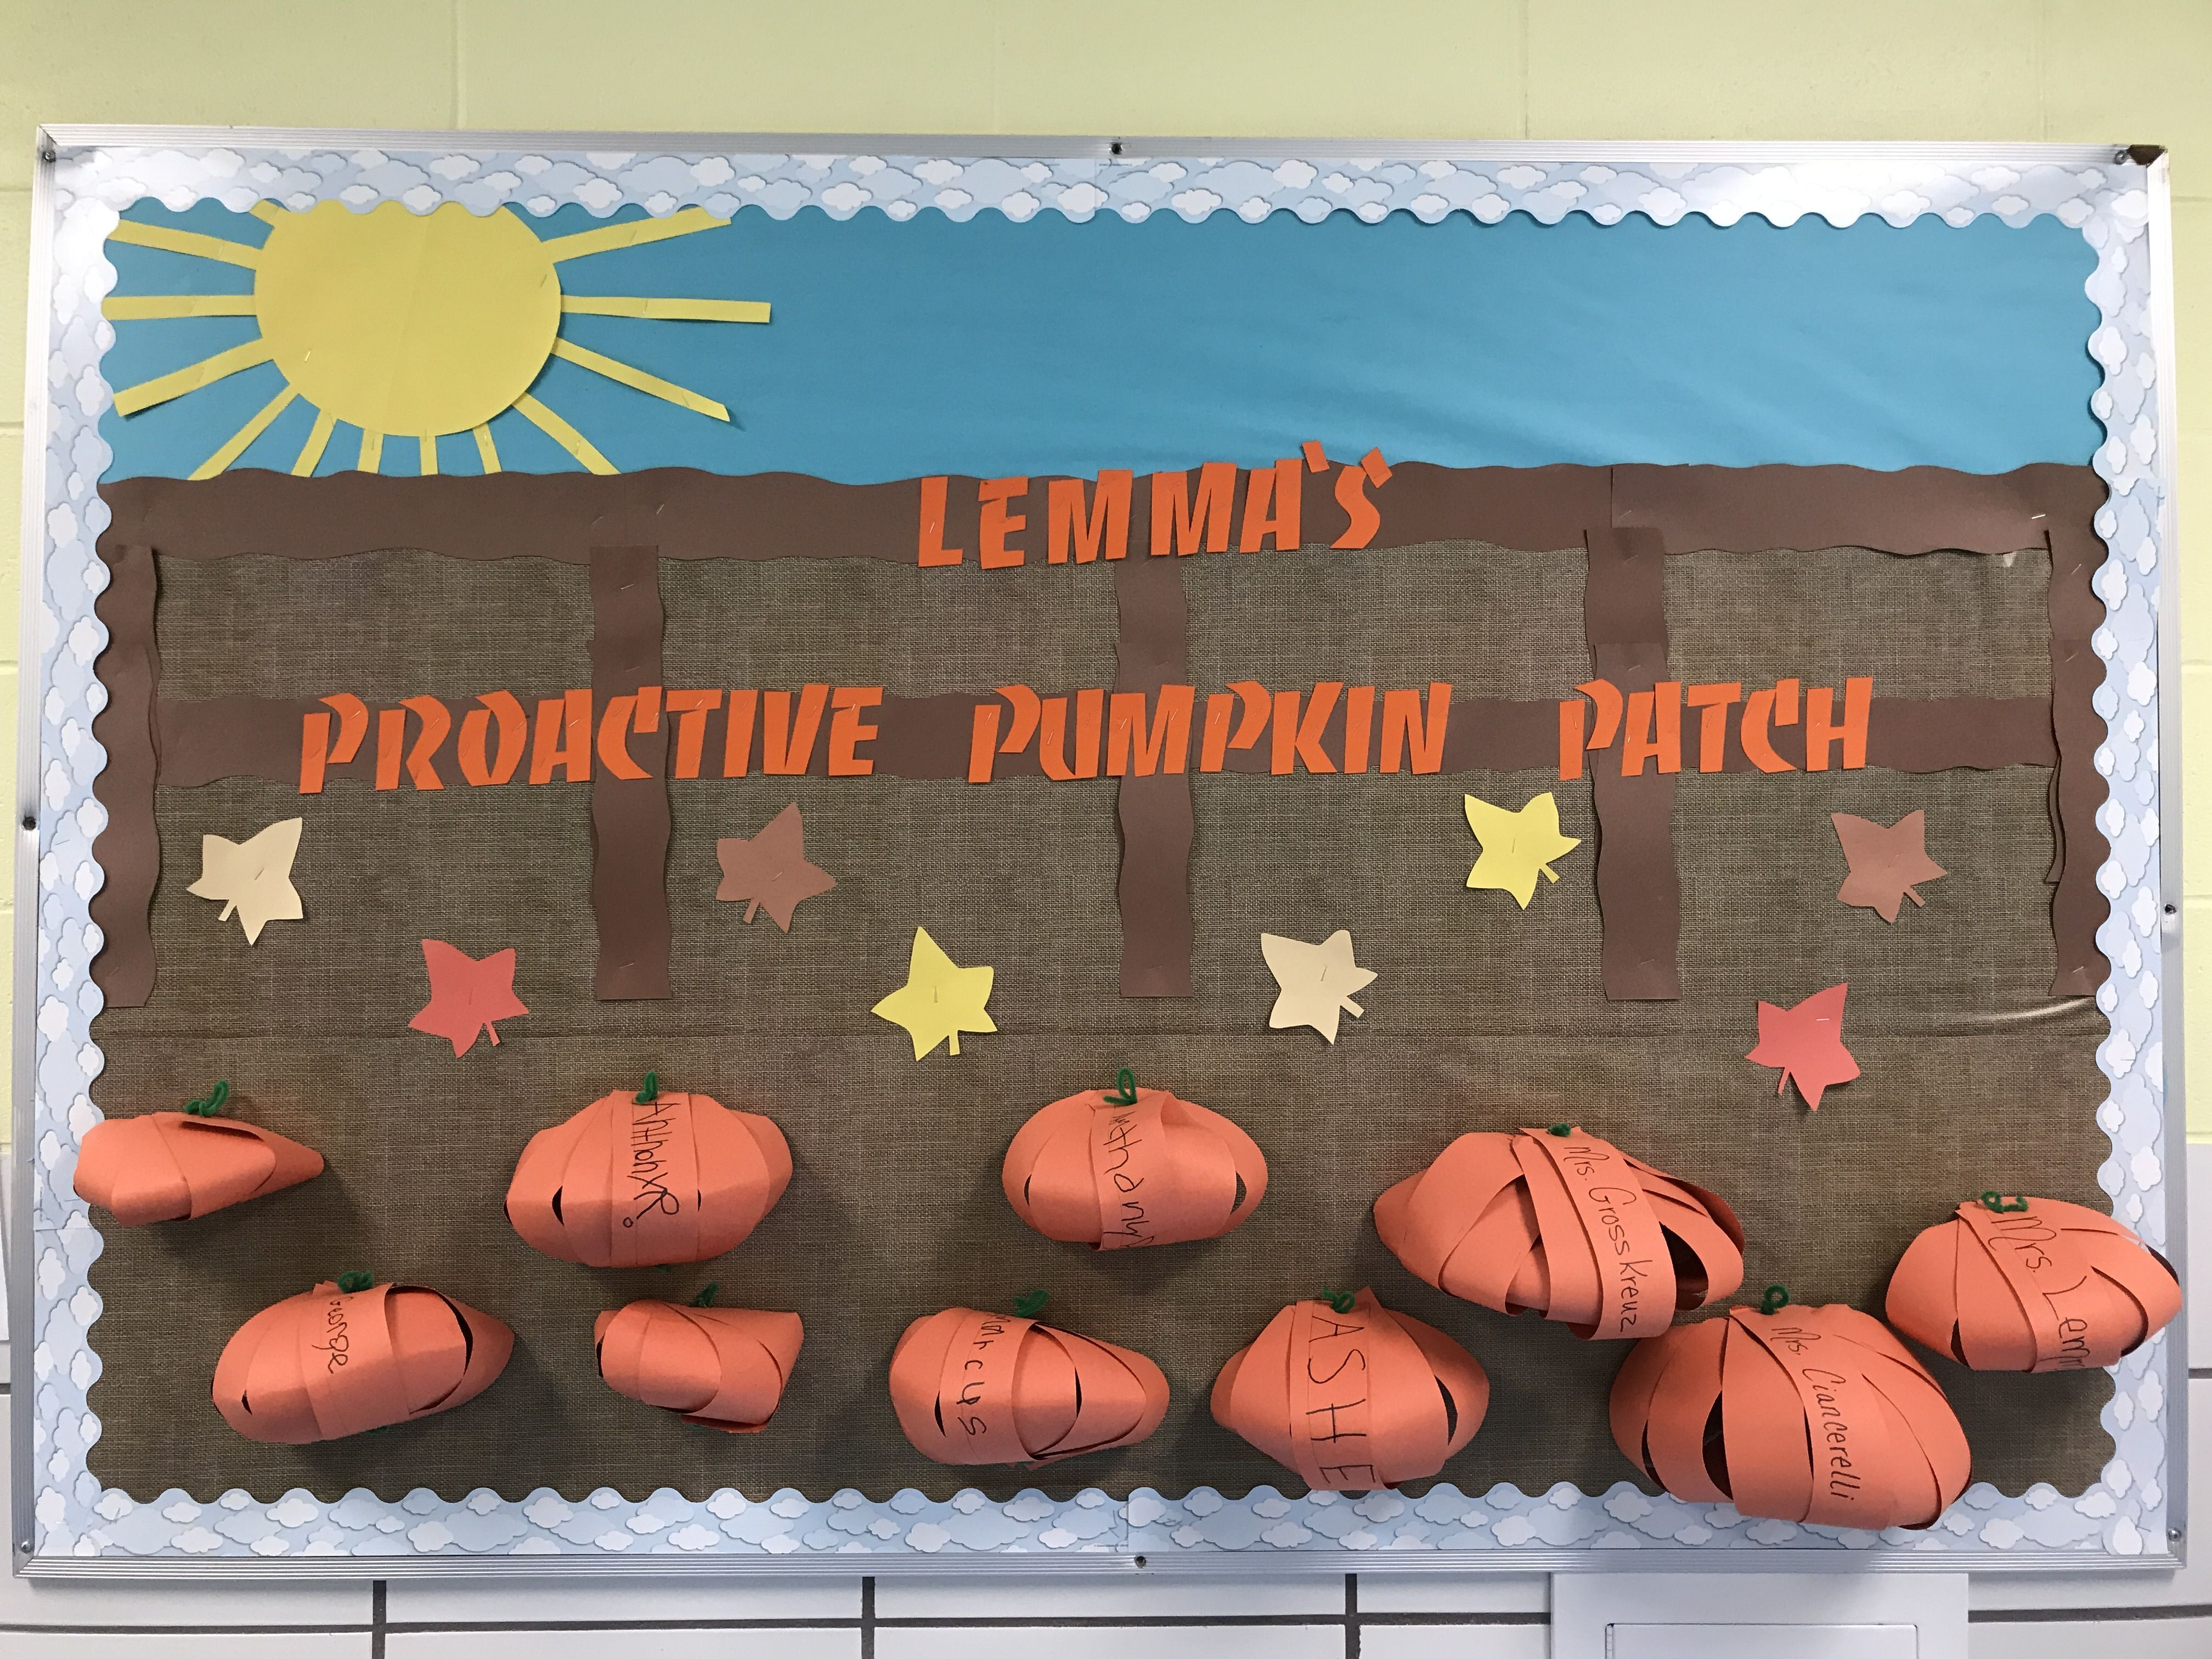 Proactive pumpkin patch. Leader in me bulletin board. #pumpkinpatchbulletinboard Proactive pumpkin patch. Leader in me bulletin board. #pumpkinpatchbulletinboard Proactive pumpkin patch. Leader in me bulletin board. #pumpkinpatchbulletinboard Proactive pumpkin patch. Leader in me bulletin board. #pumpkinpatchbulletinboard